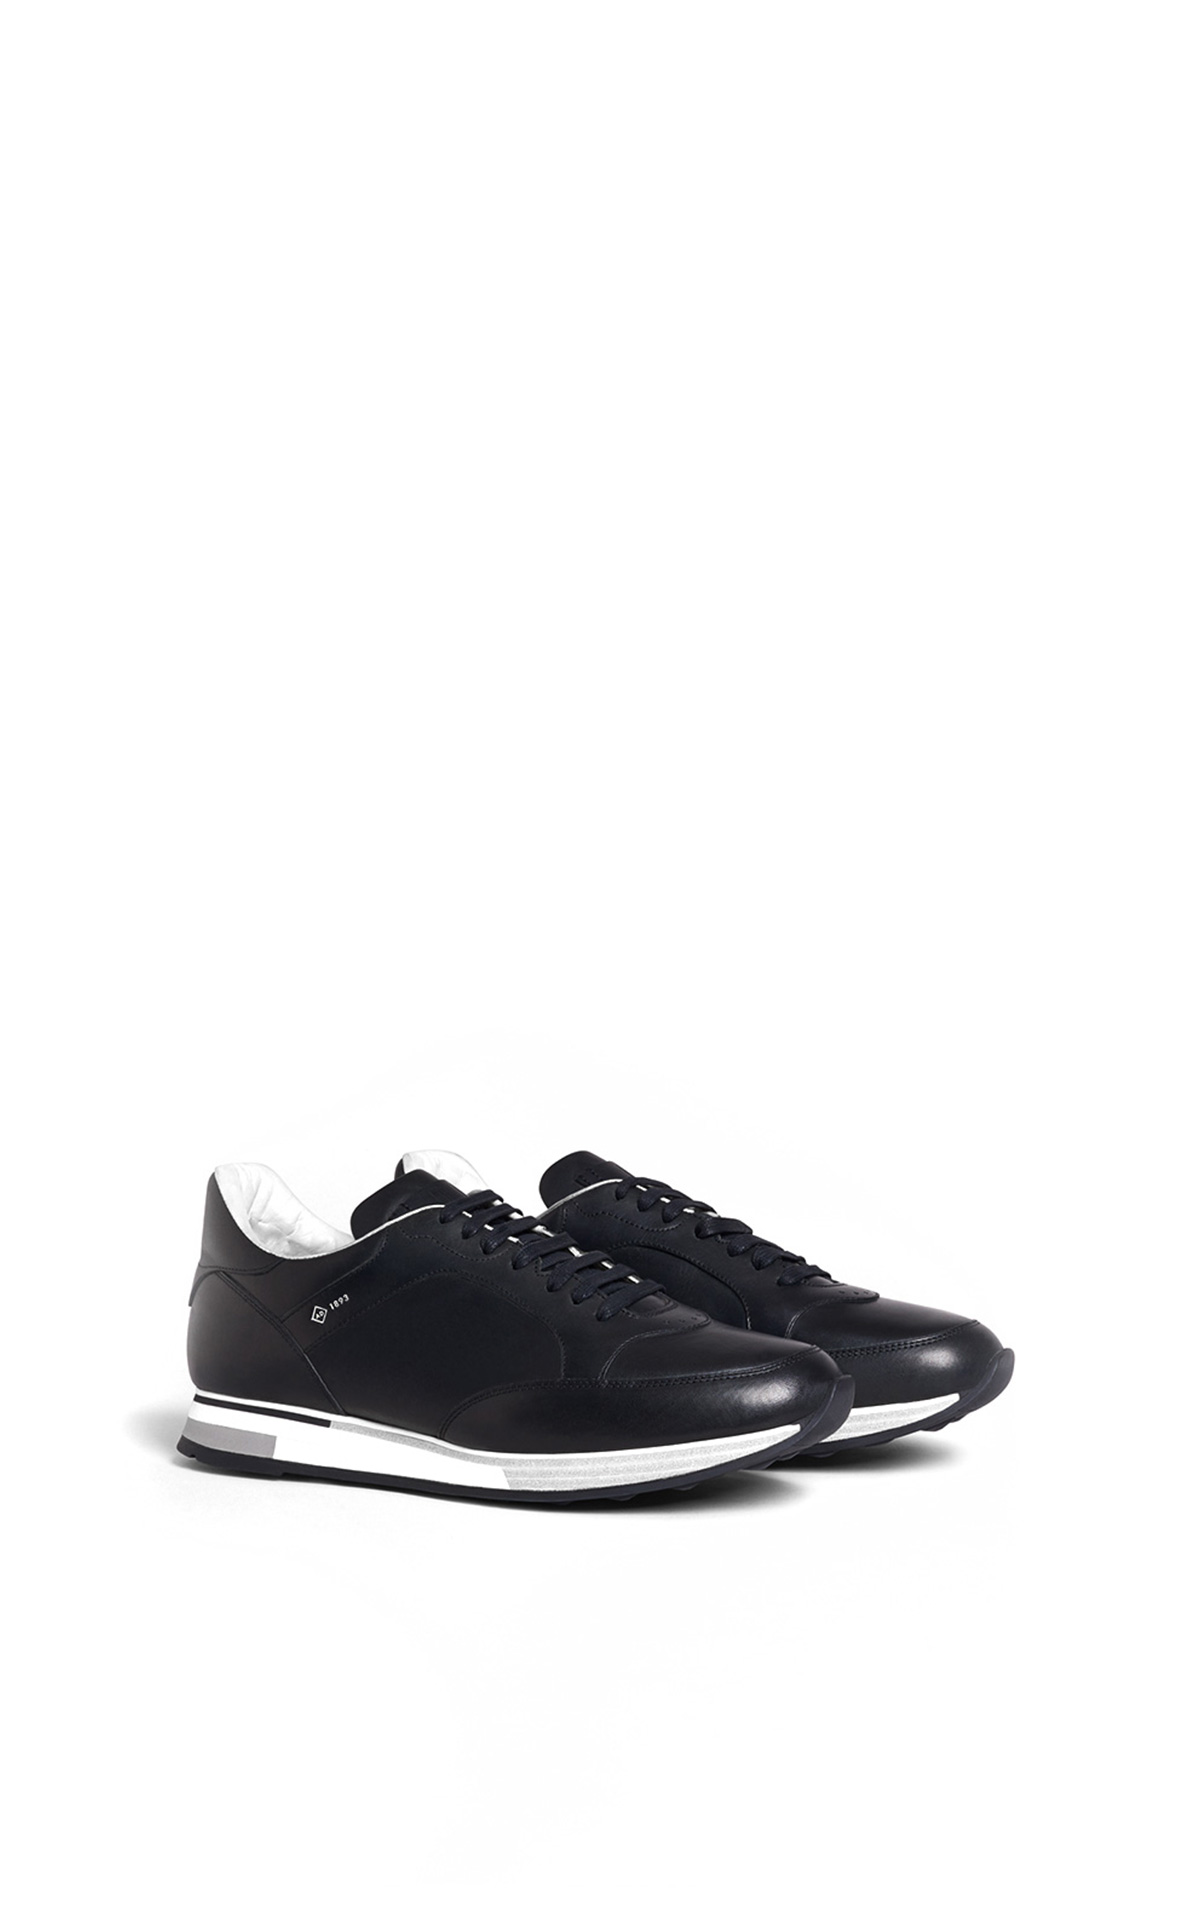 dunhill Black leather sneakers | La Vallée Village